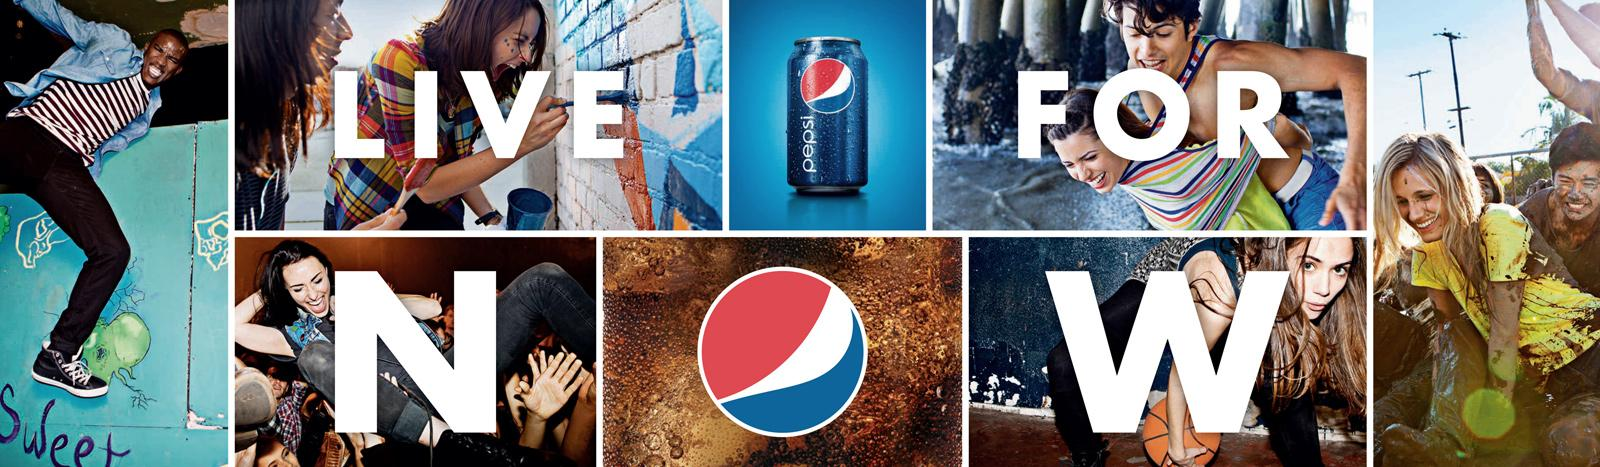 Pepsi Outdoor Ad -  Live For Now, 4